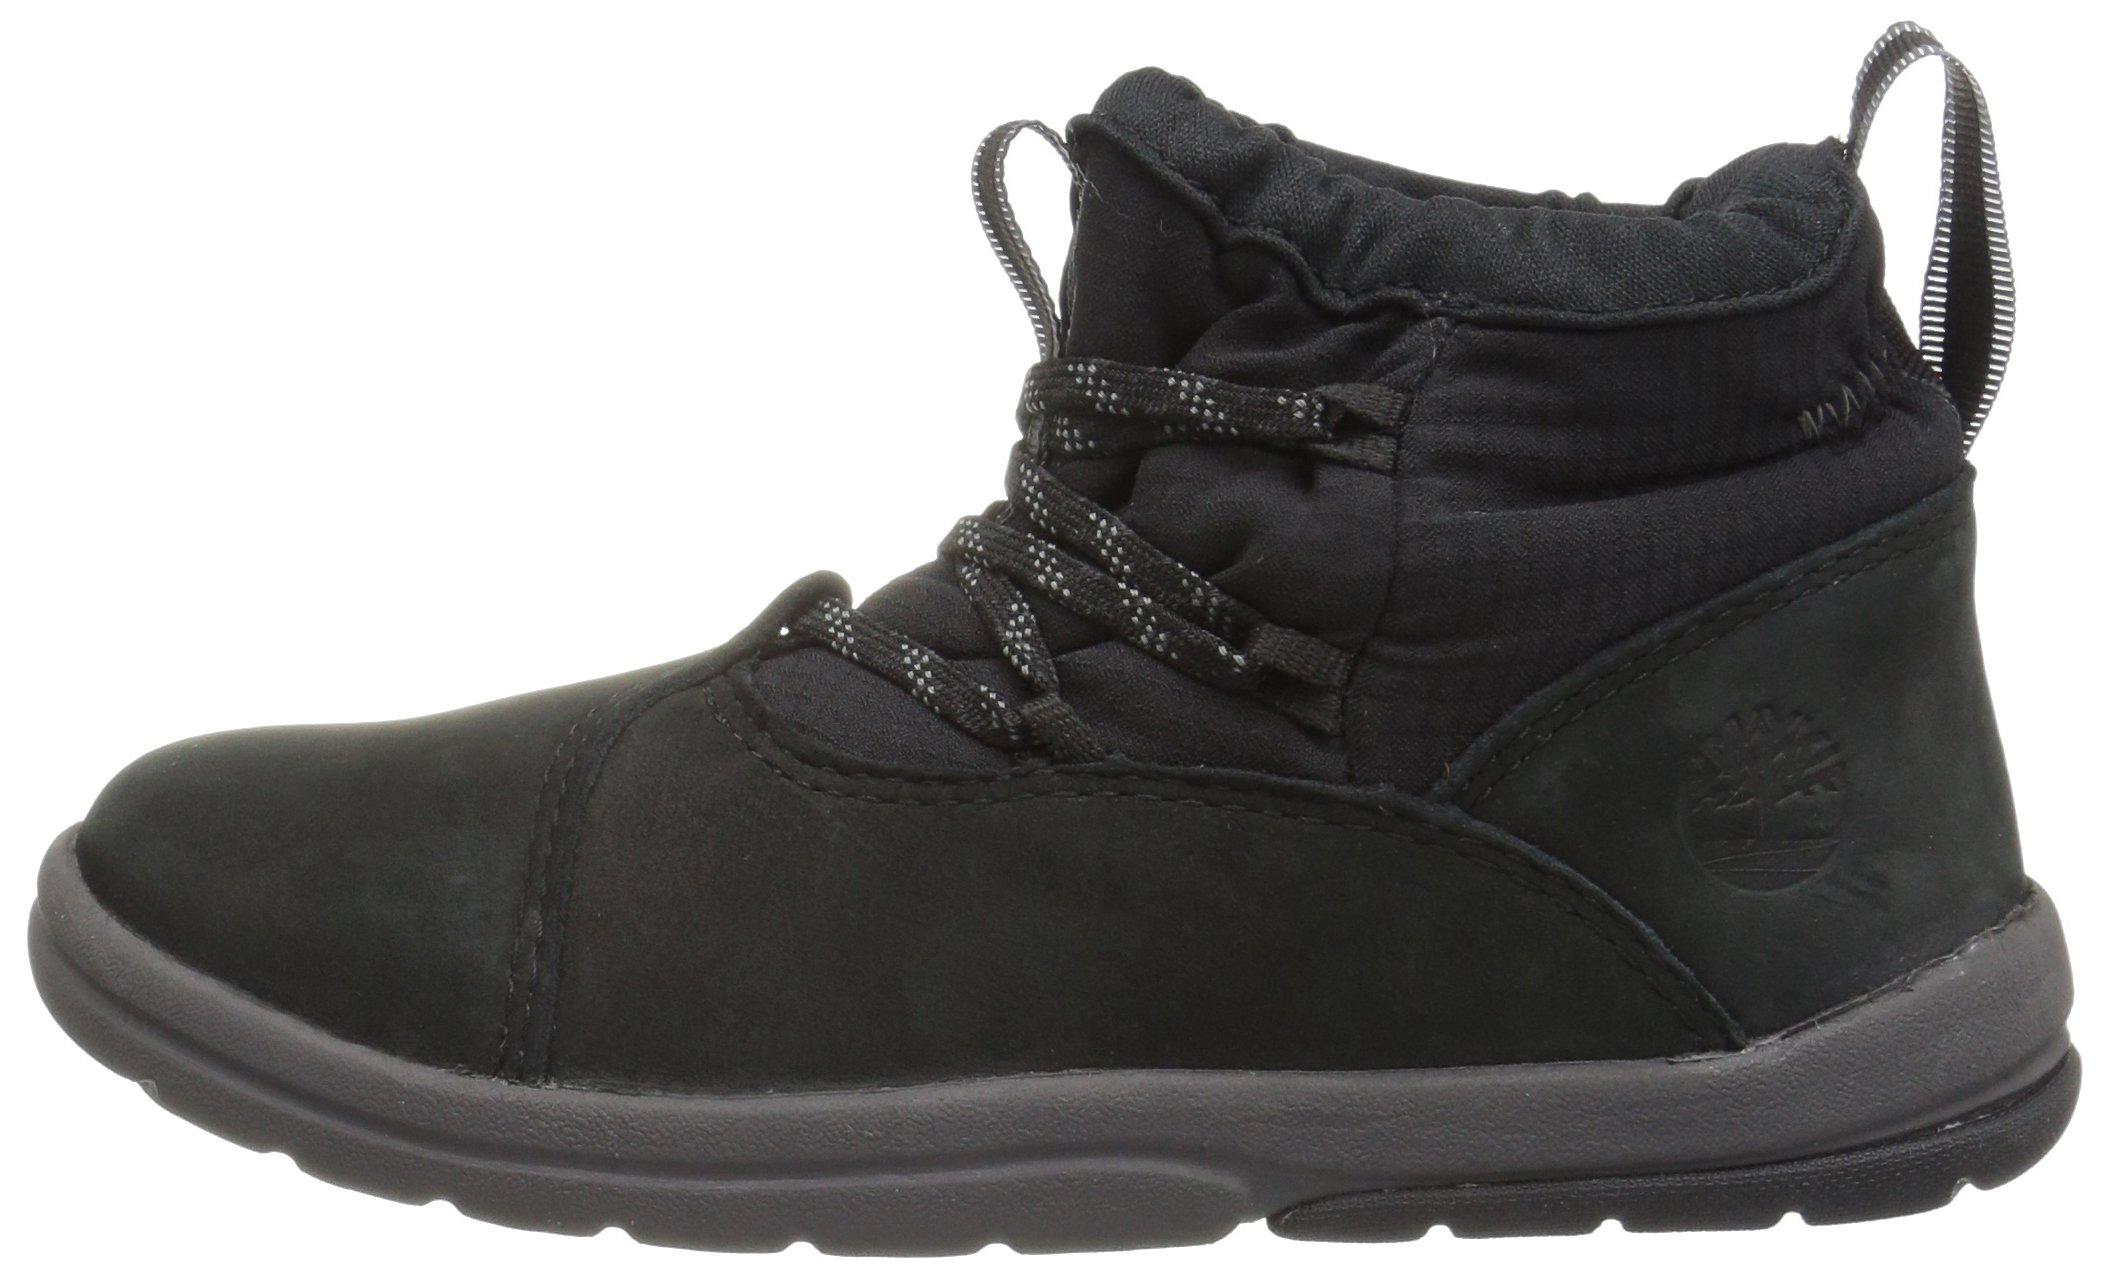 Timberland Unisex Toddle Tracks Warm Fabric Leather Bootie Snow Boot Black Nubuck 12 M US Little Kid by Timberland (Image #5)